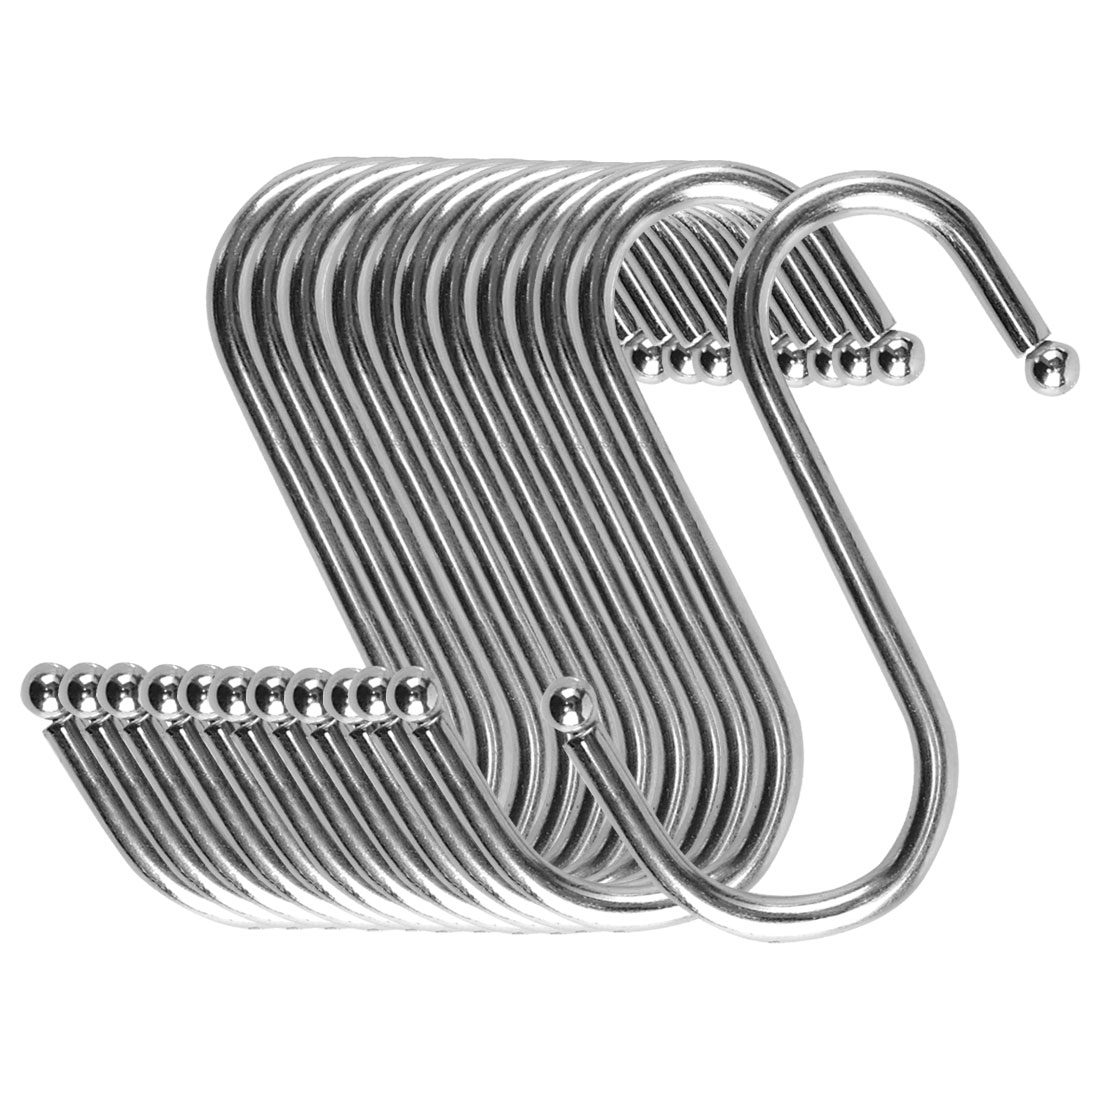 S Shape Hook Rack Stainless Steel for Kitchenware Clothes Towel Holder 12 Pack